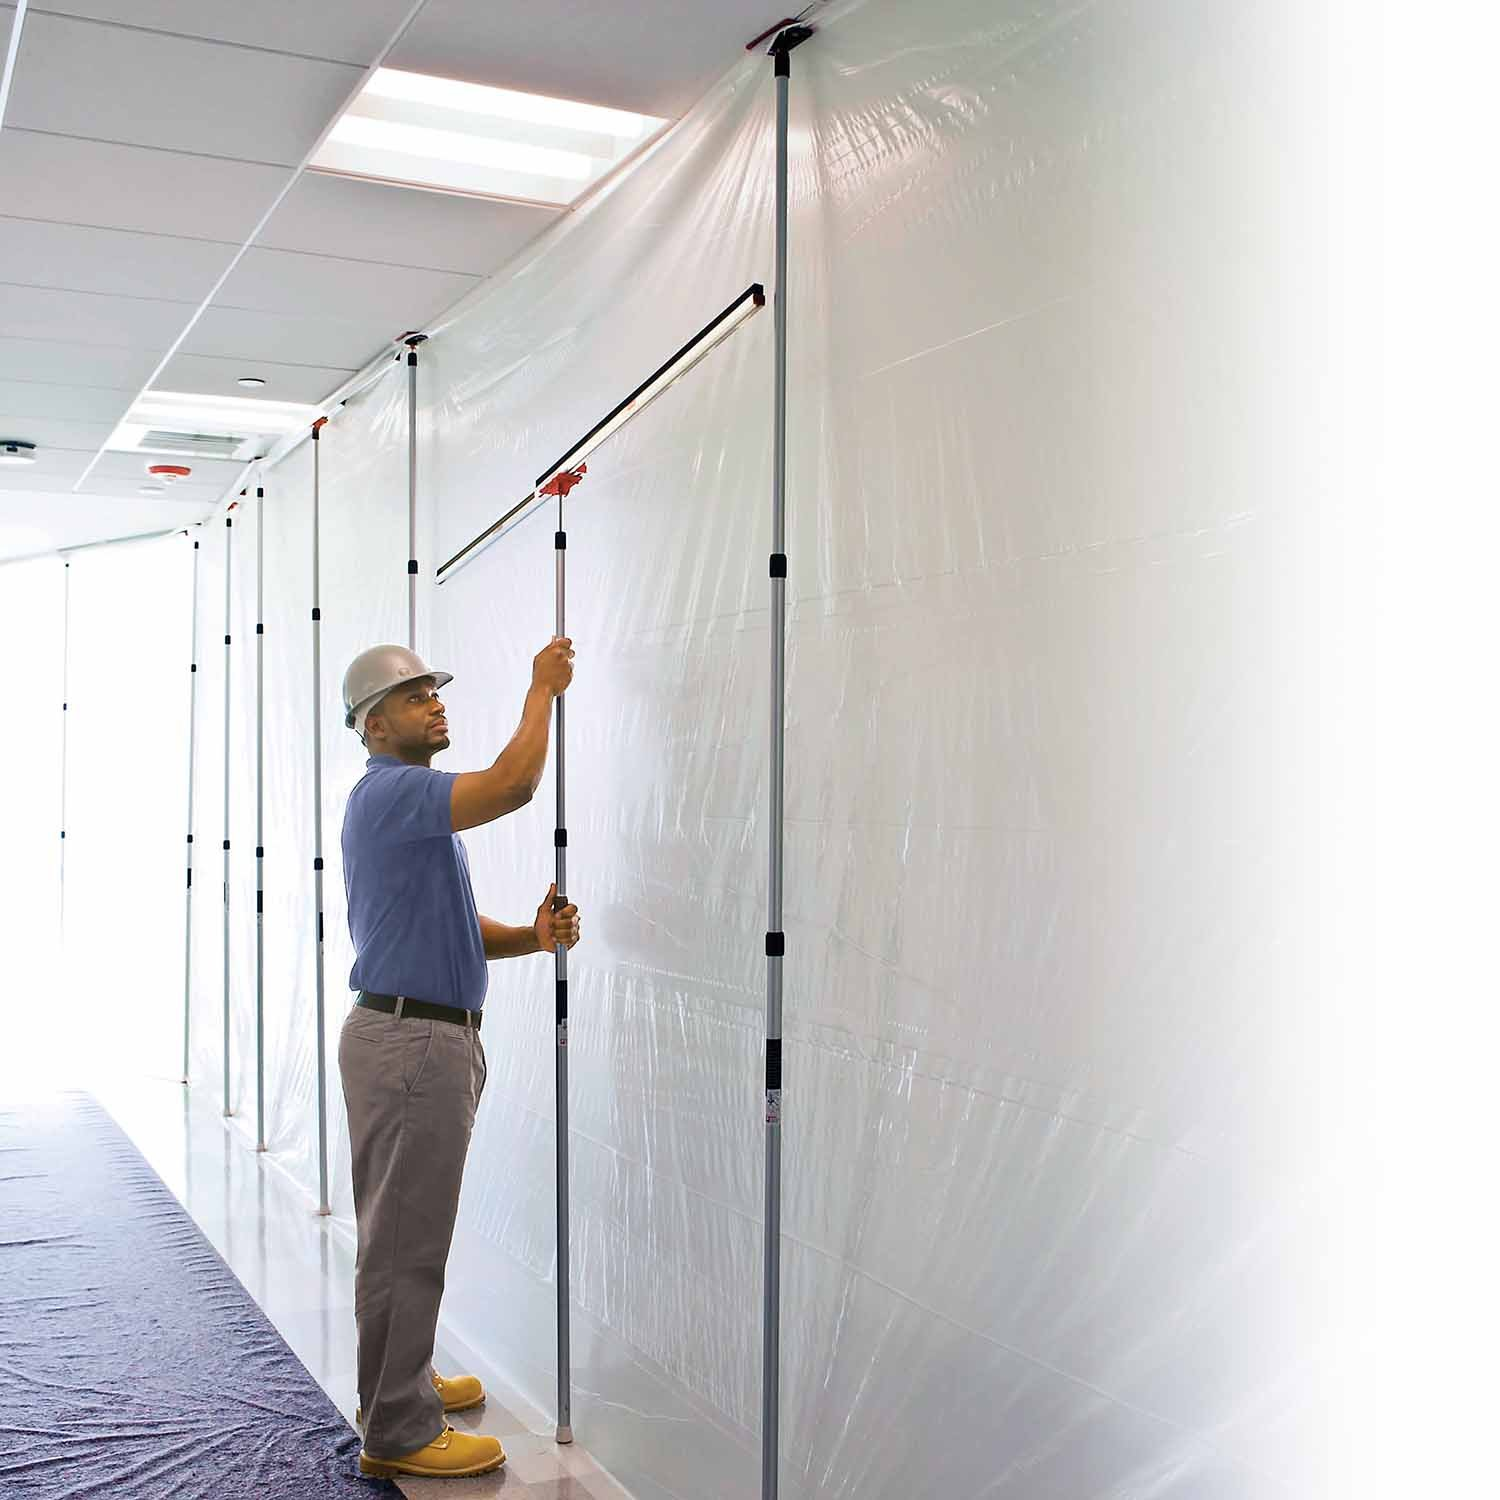 ZipWall 12' Spring-Loaded Poles for Dust Barriers, 2-Pack, SLP2 by ZipWall (Image #4)